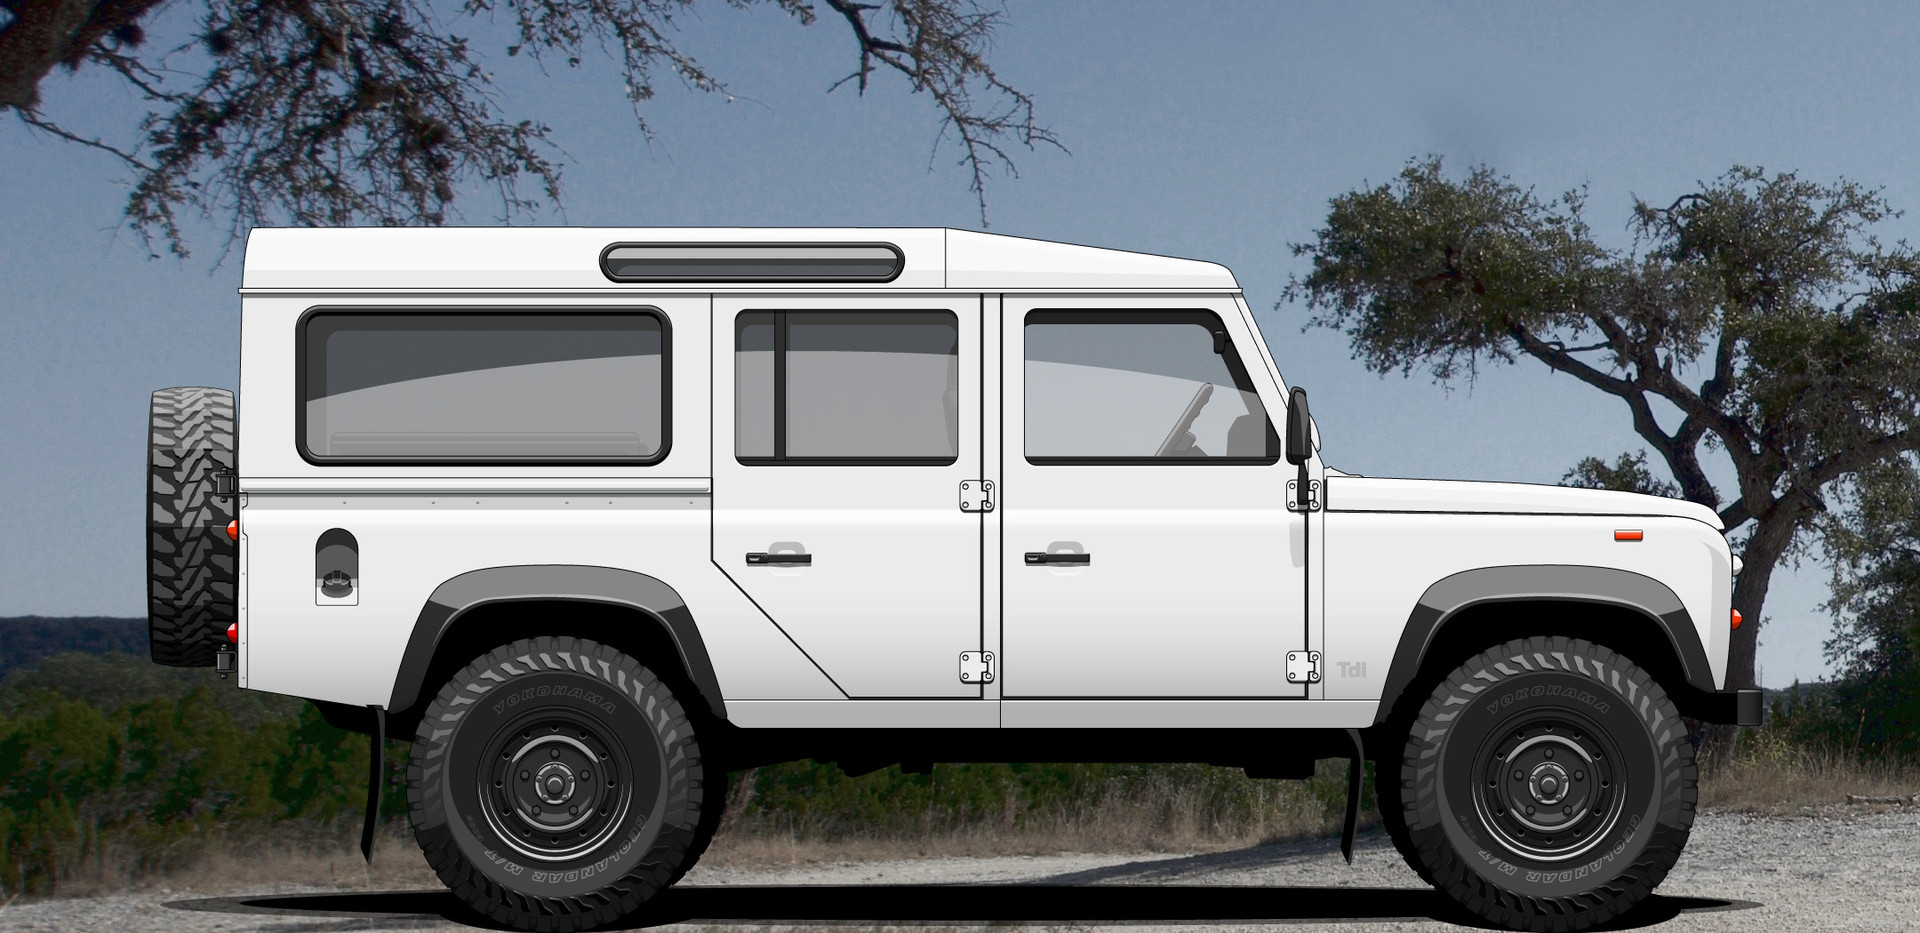 Arctic White Defender 110 5 Door.jpg